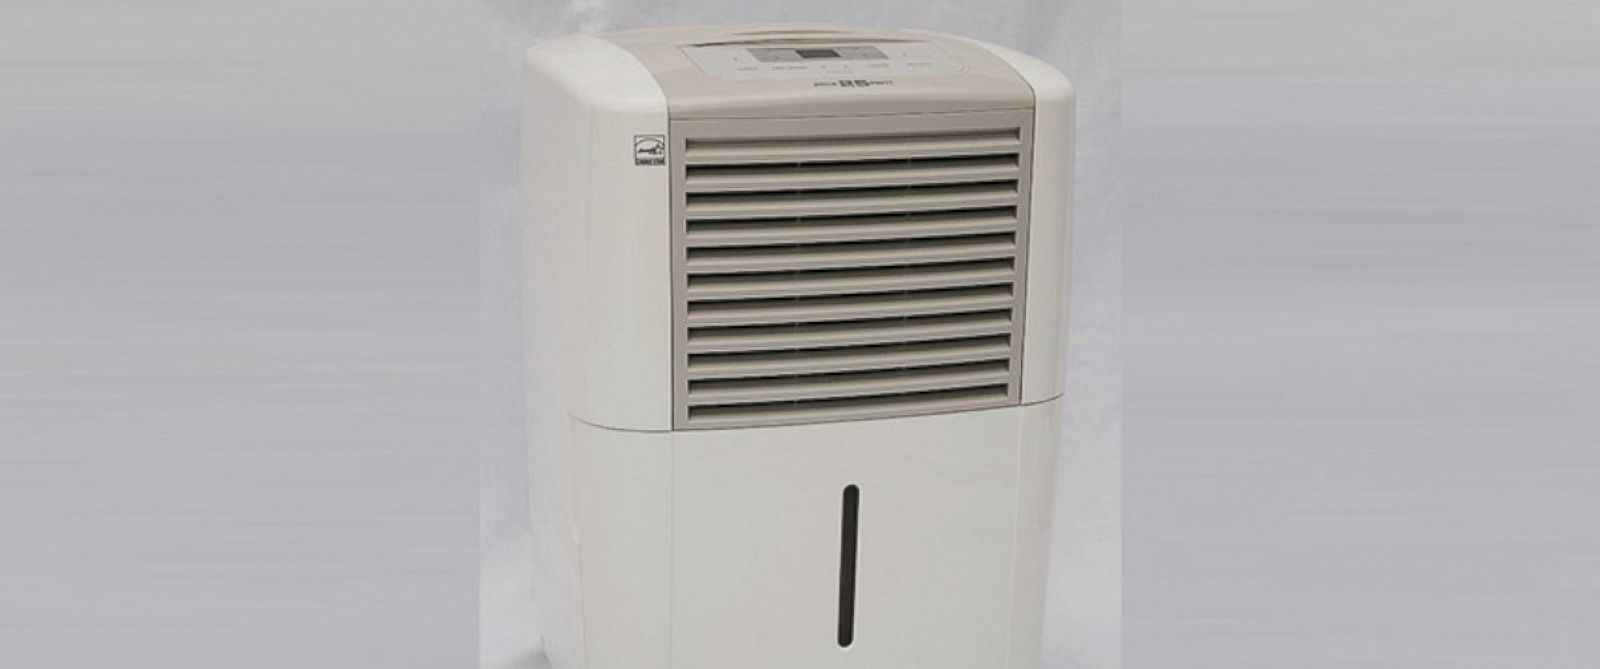 PHOTO: The U.S. Consumer Product Safety Commission today issued another recall for in-home dehumidifiers like the one seen in this photo.